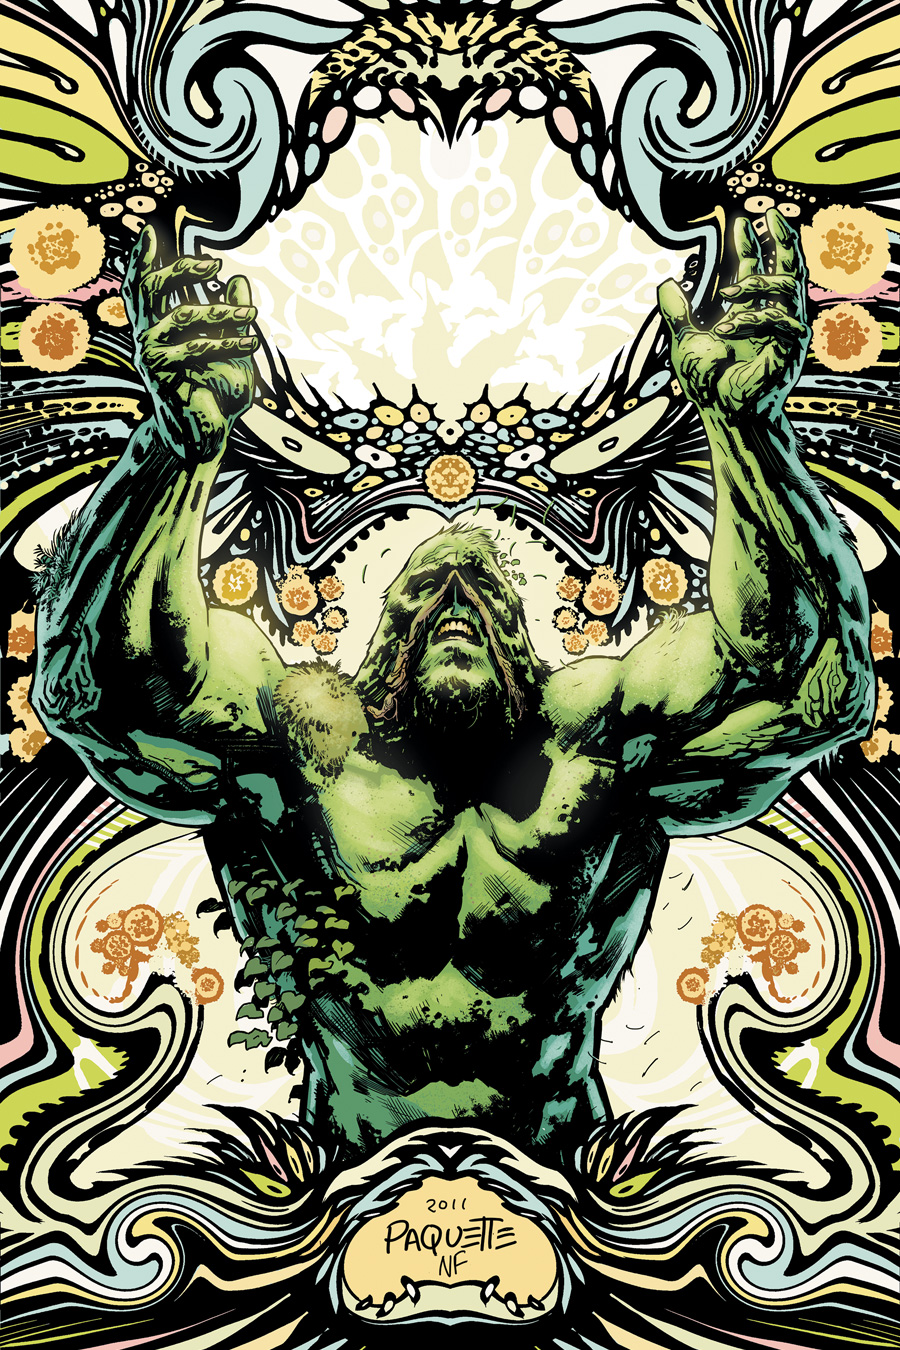 People I Give You Swamp Jesus A Review Of Swamp Thing 7 Murthareviews